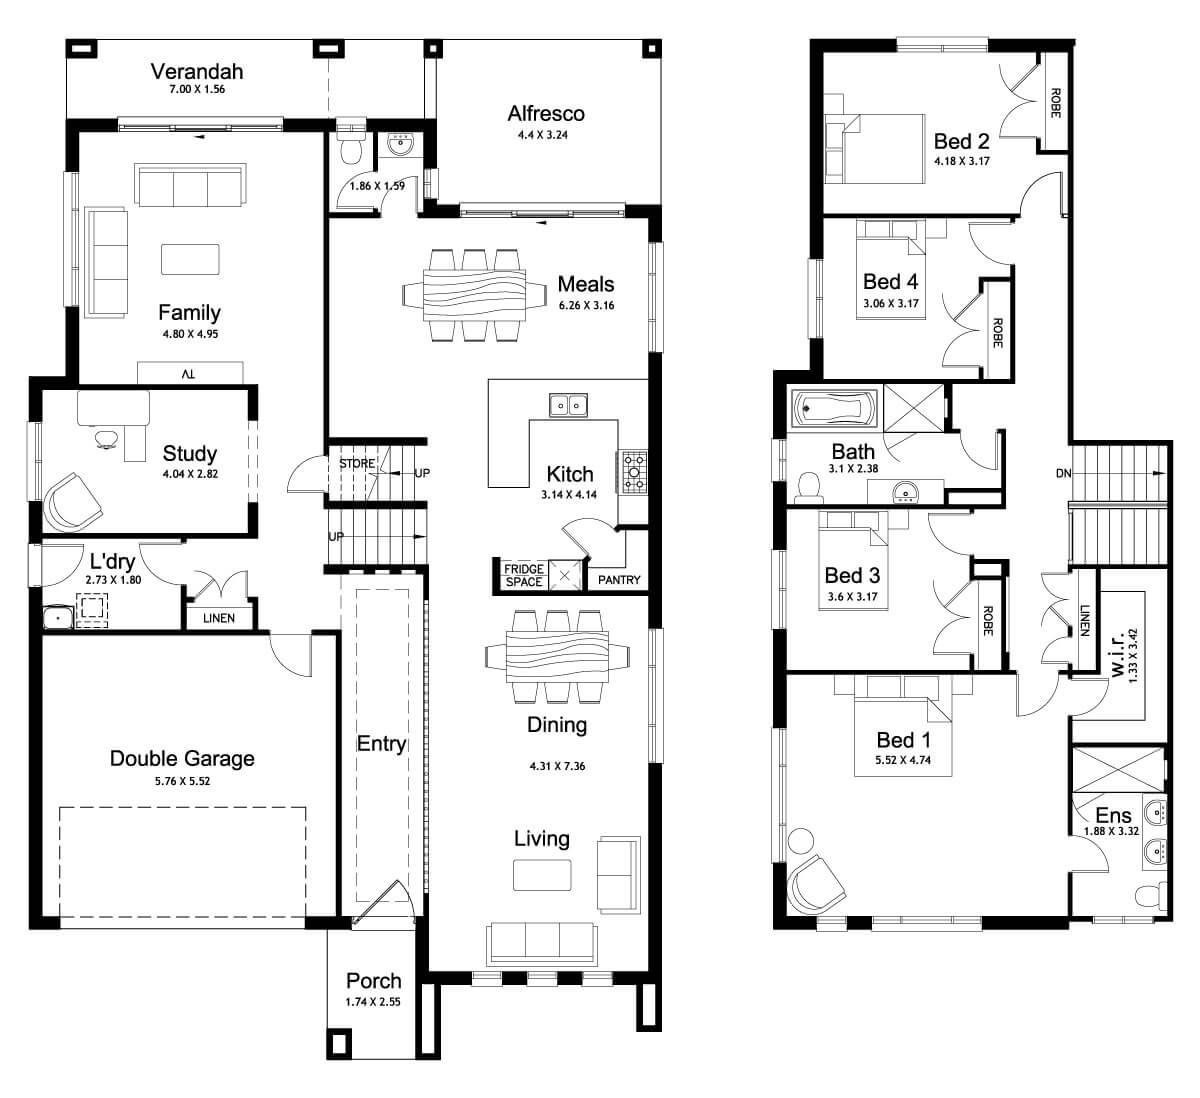 Floor plan friday split level 4 bedroom study 4 storey building floor plans